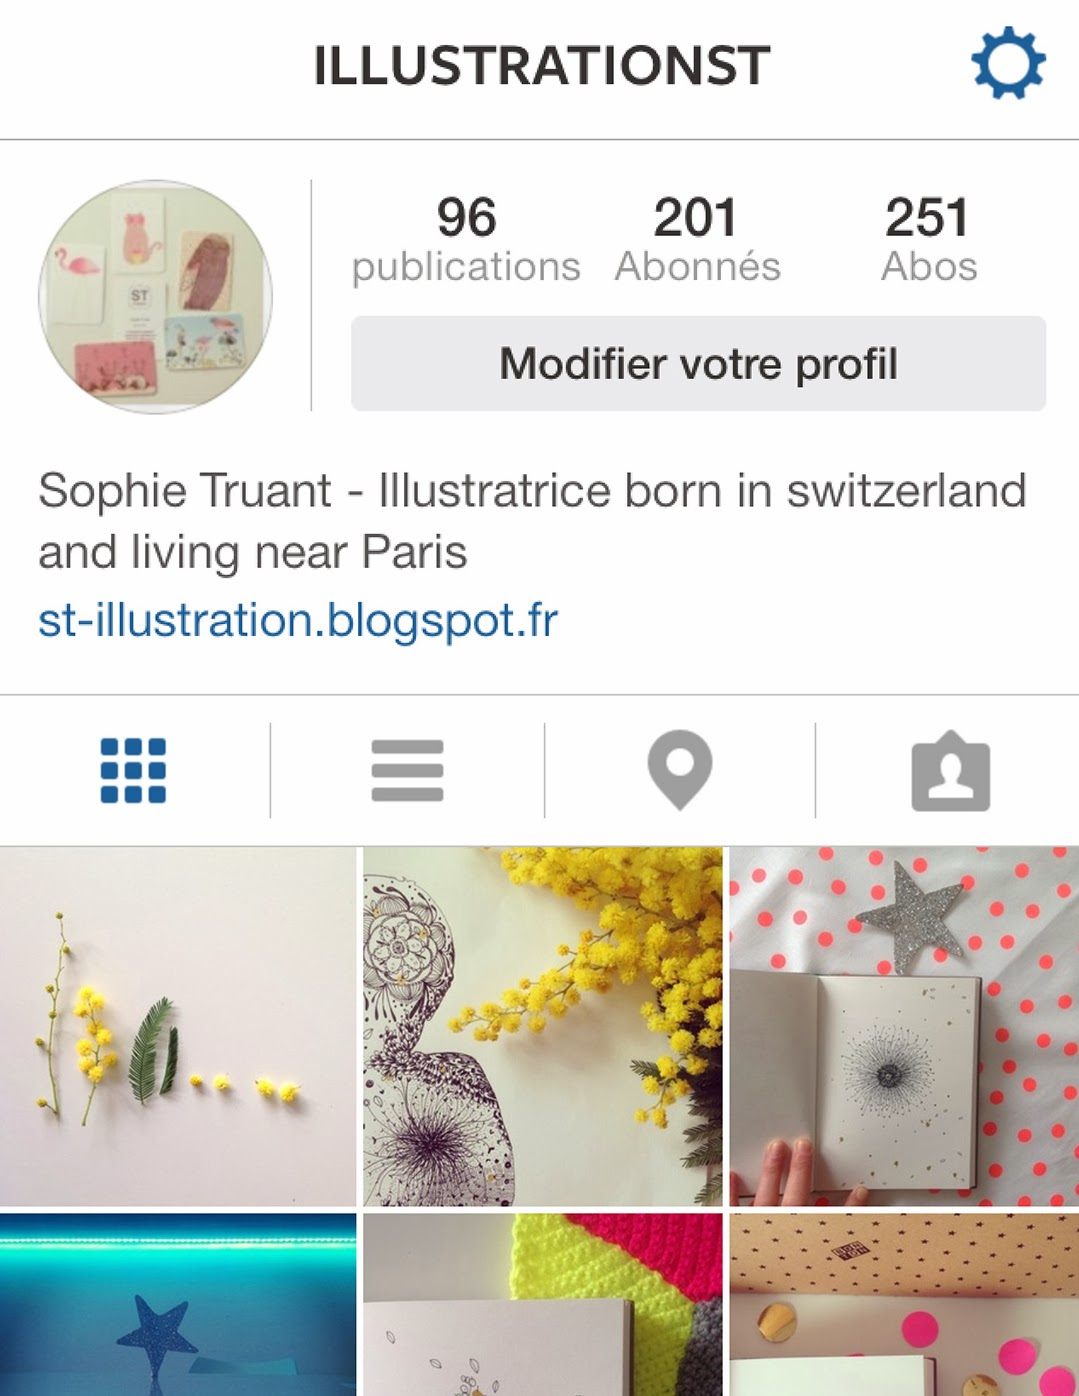 http://instagram.com/illustrationst?ref=badge#